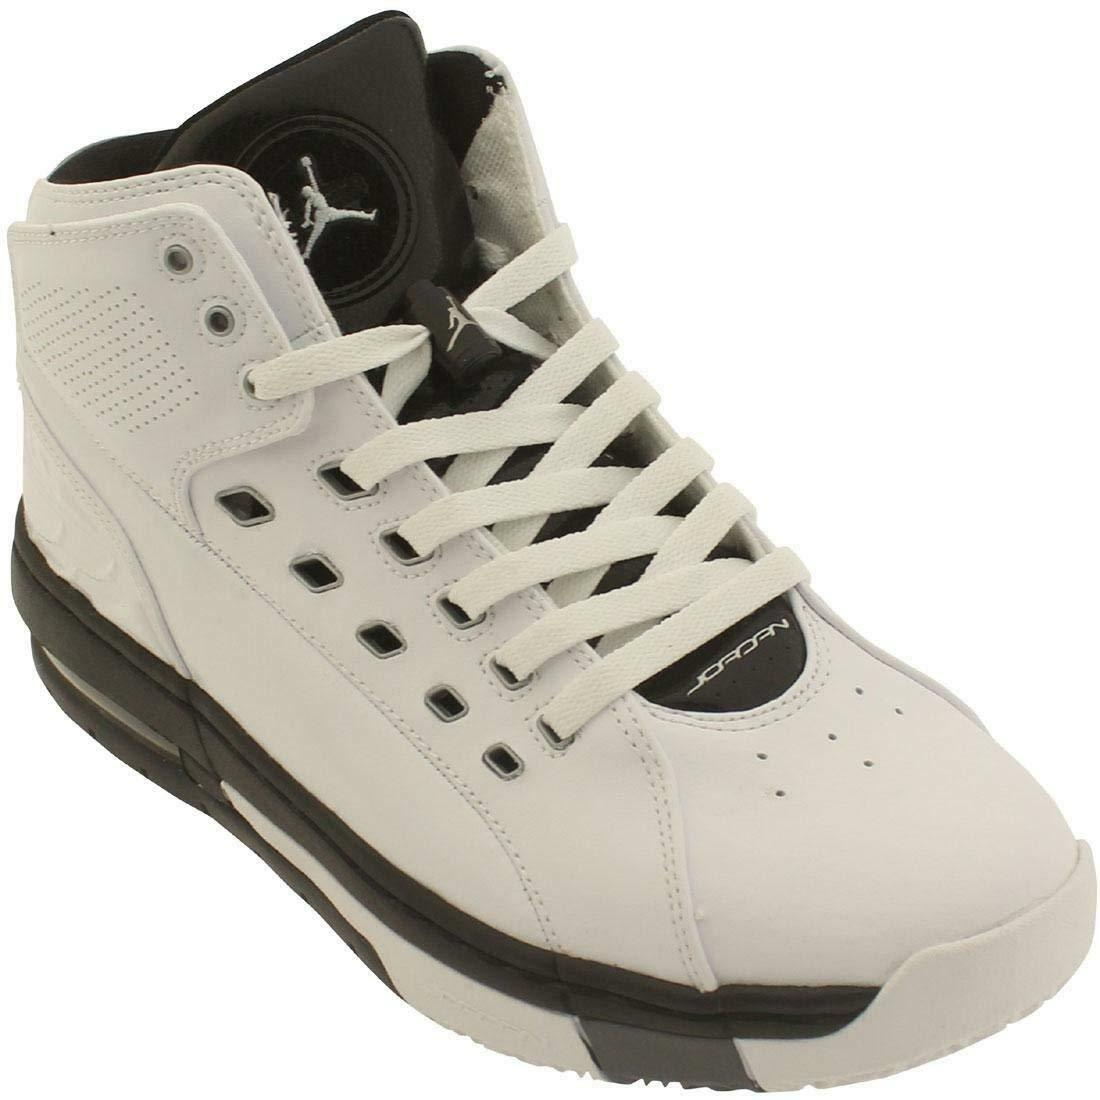 Jordan Ol'School White Metallic Silver-Black-Cool Grey (317223 113)